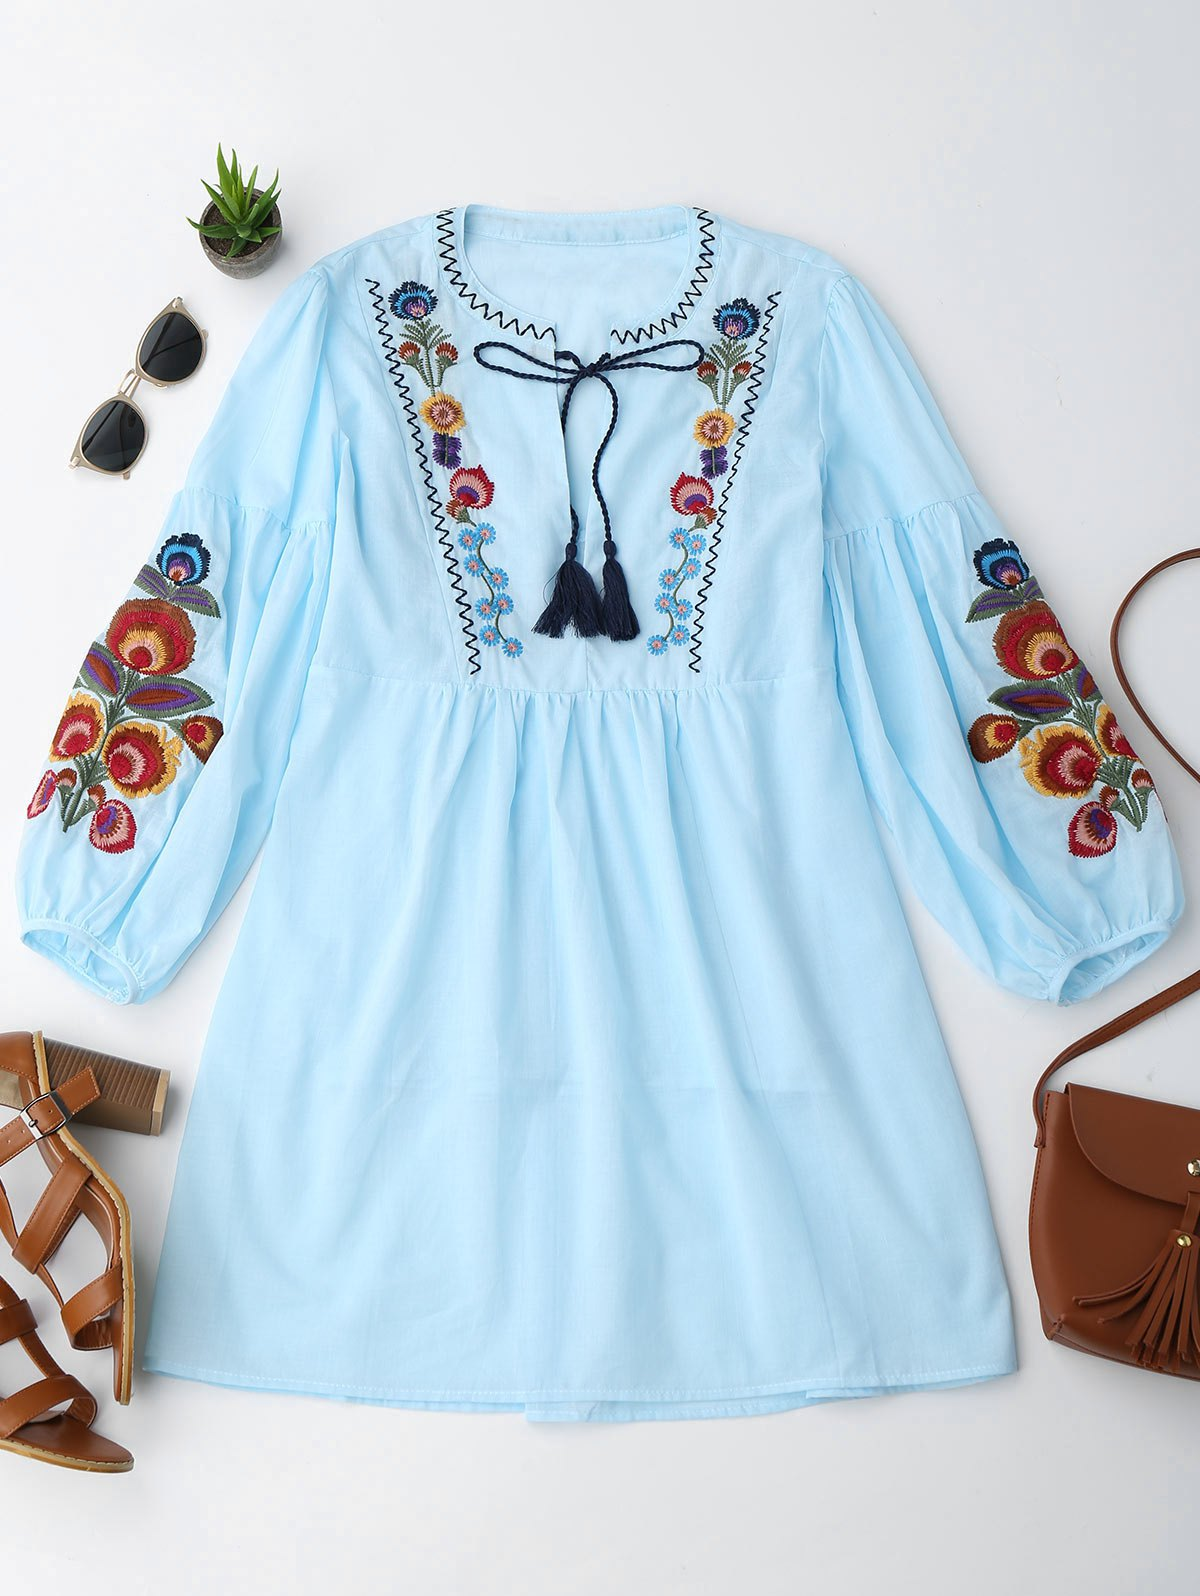 Buy floral embroidered oversized dress tank top palomino